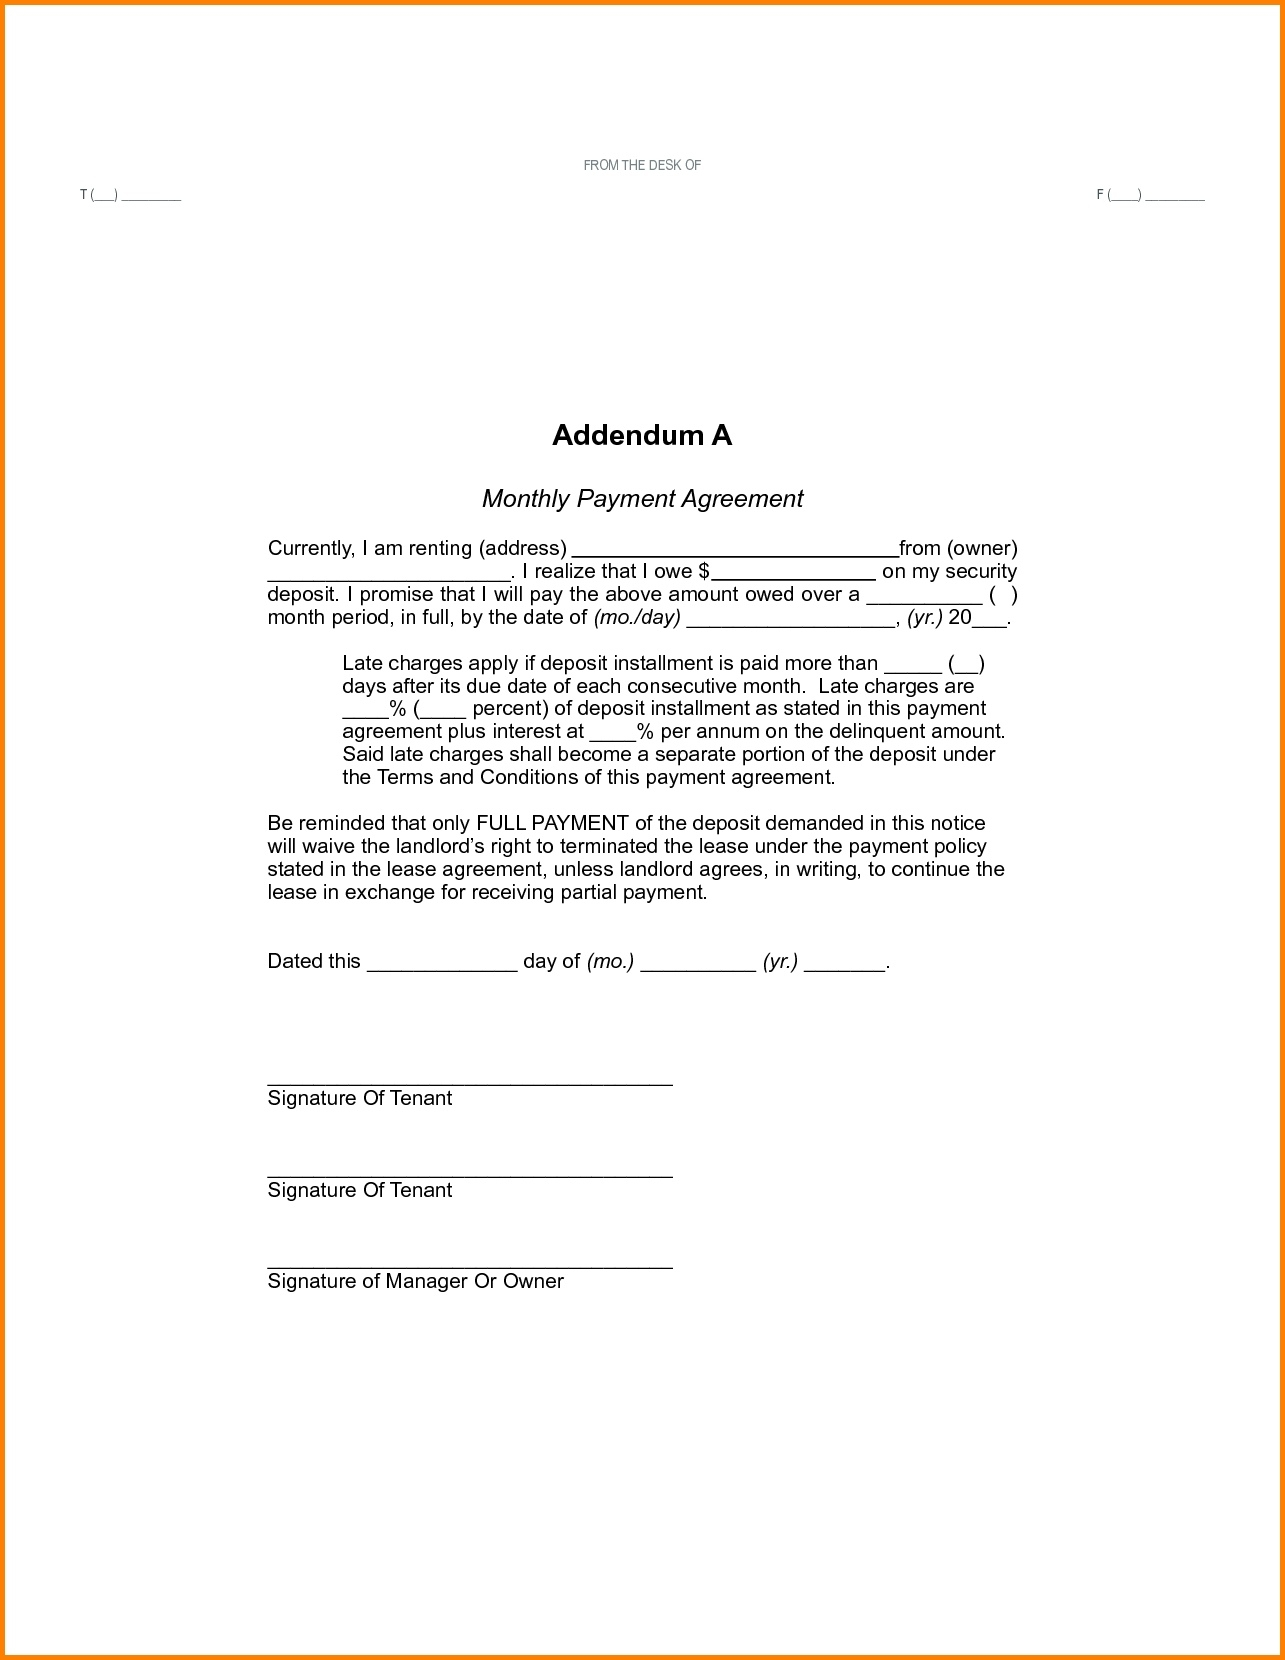 Agreement To Pay Rent Complete Monthly Payment Contract Template for Free Printable Blank Templates For Paid And Owed